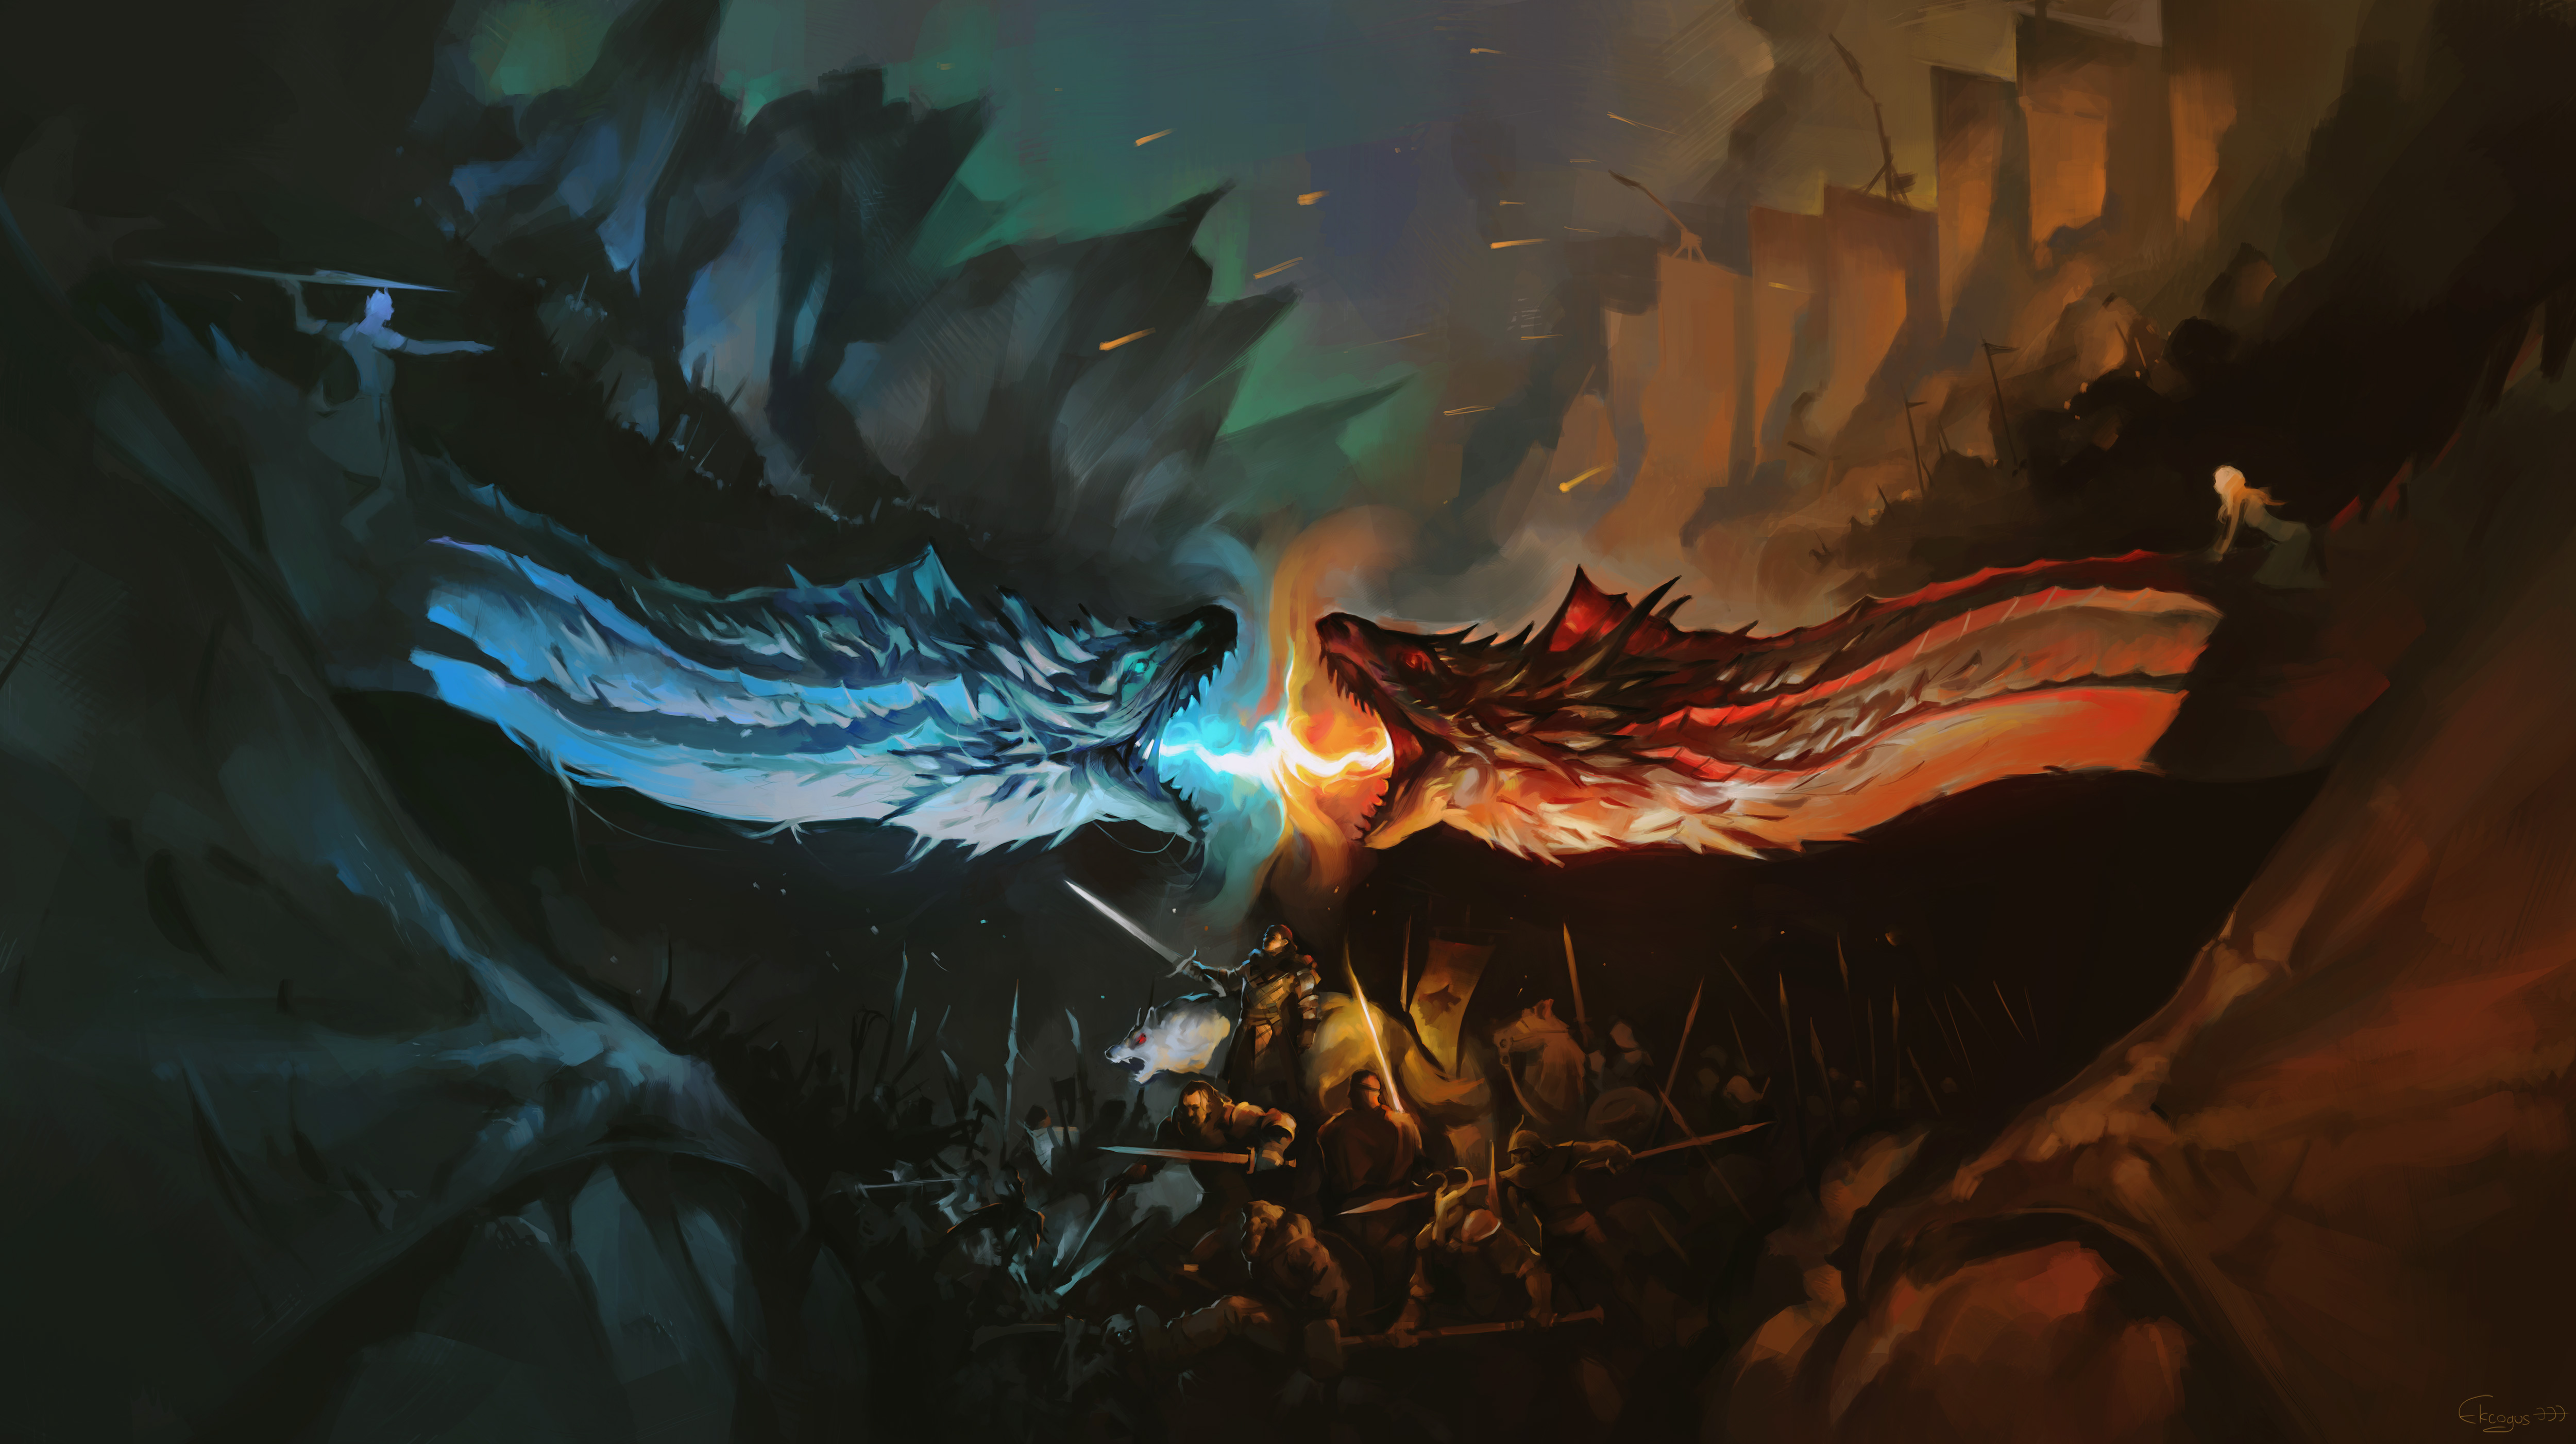 Night King And Khaleesi Fighting With Dragons Artwork Hd